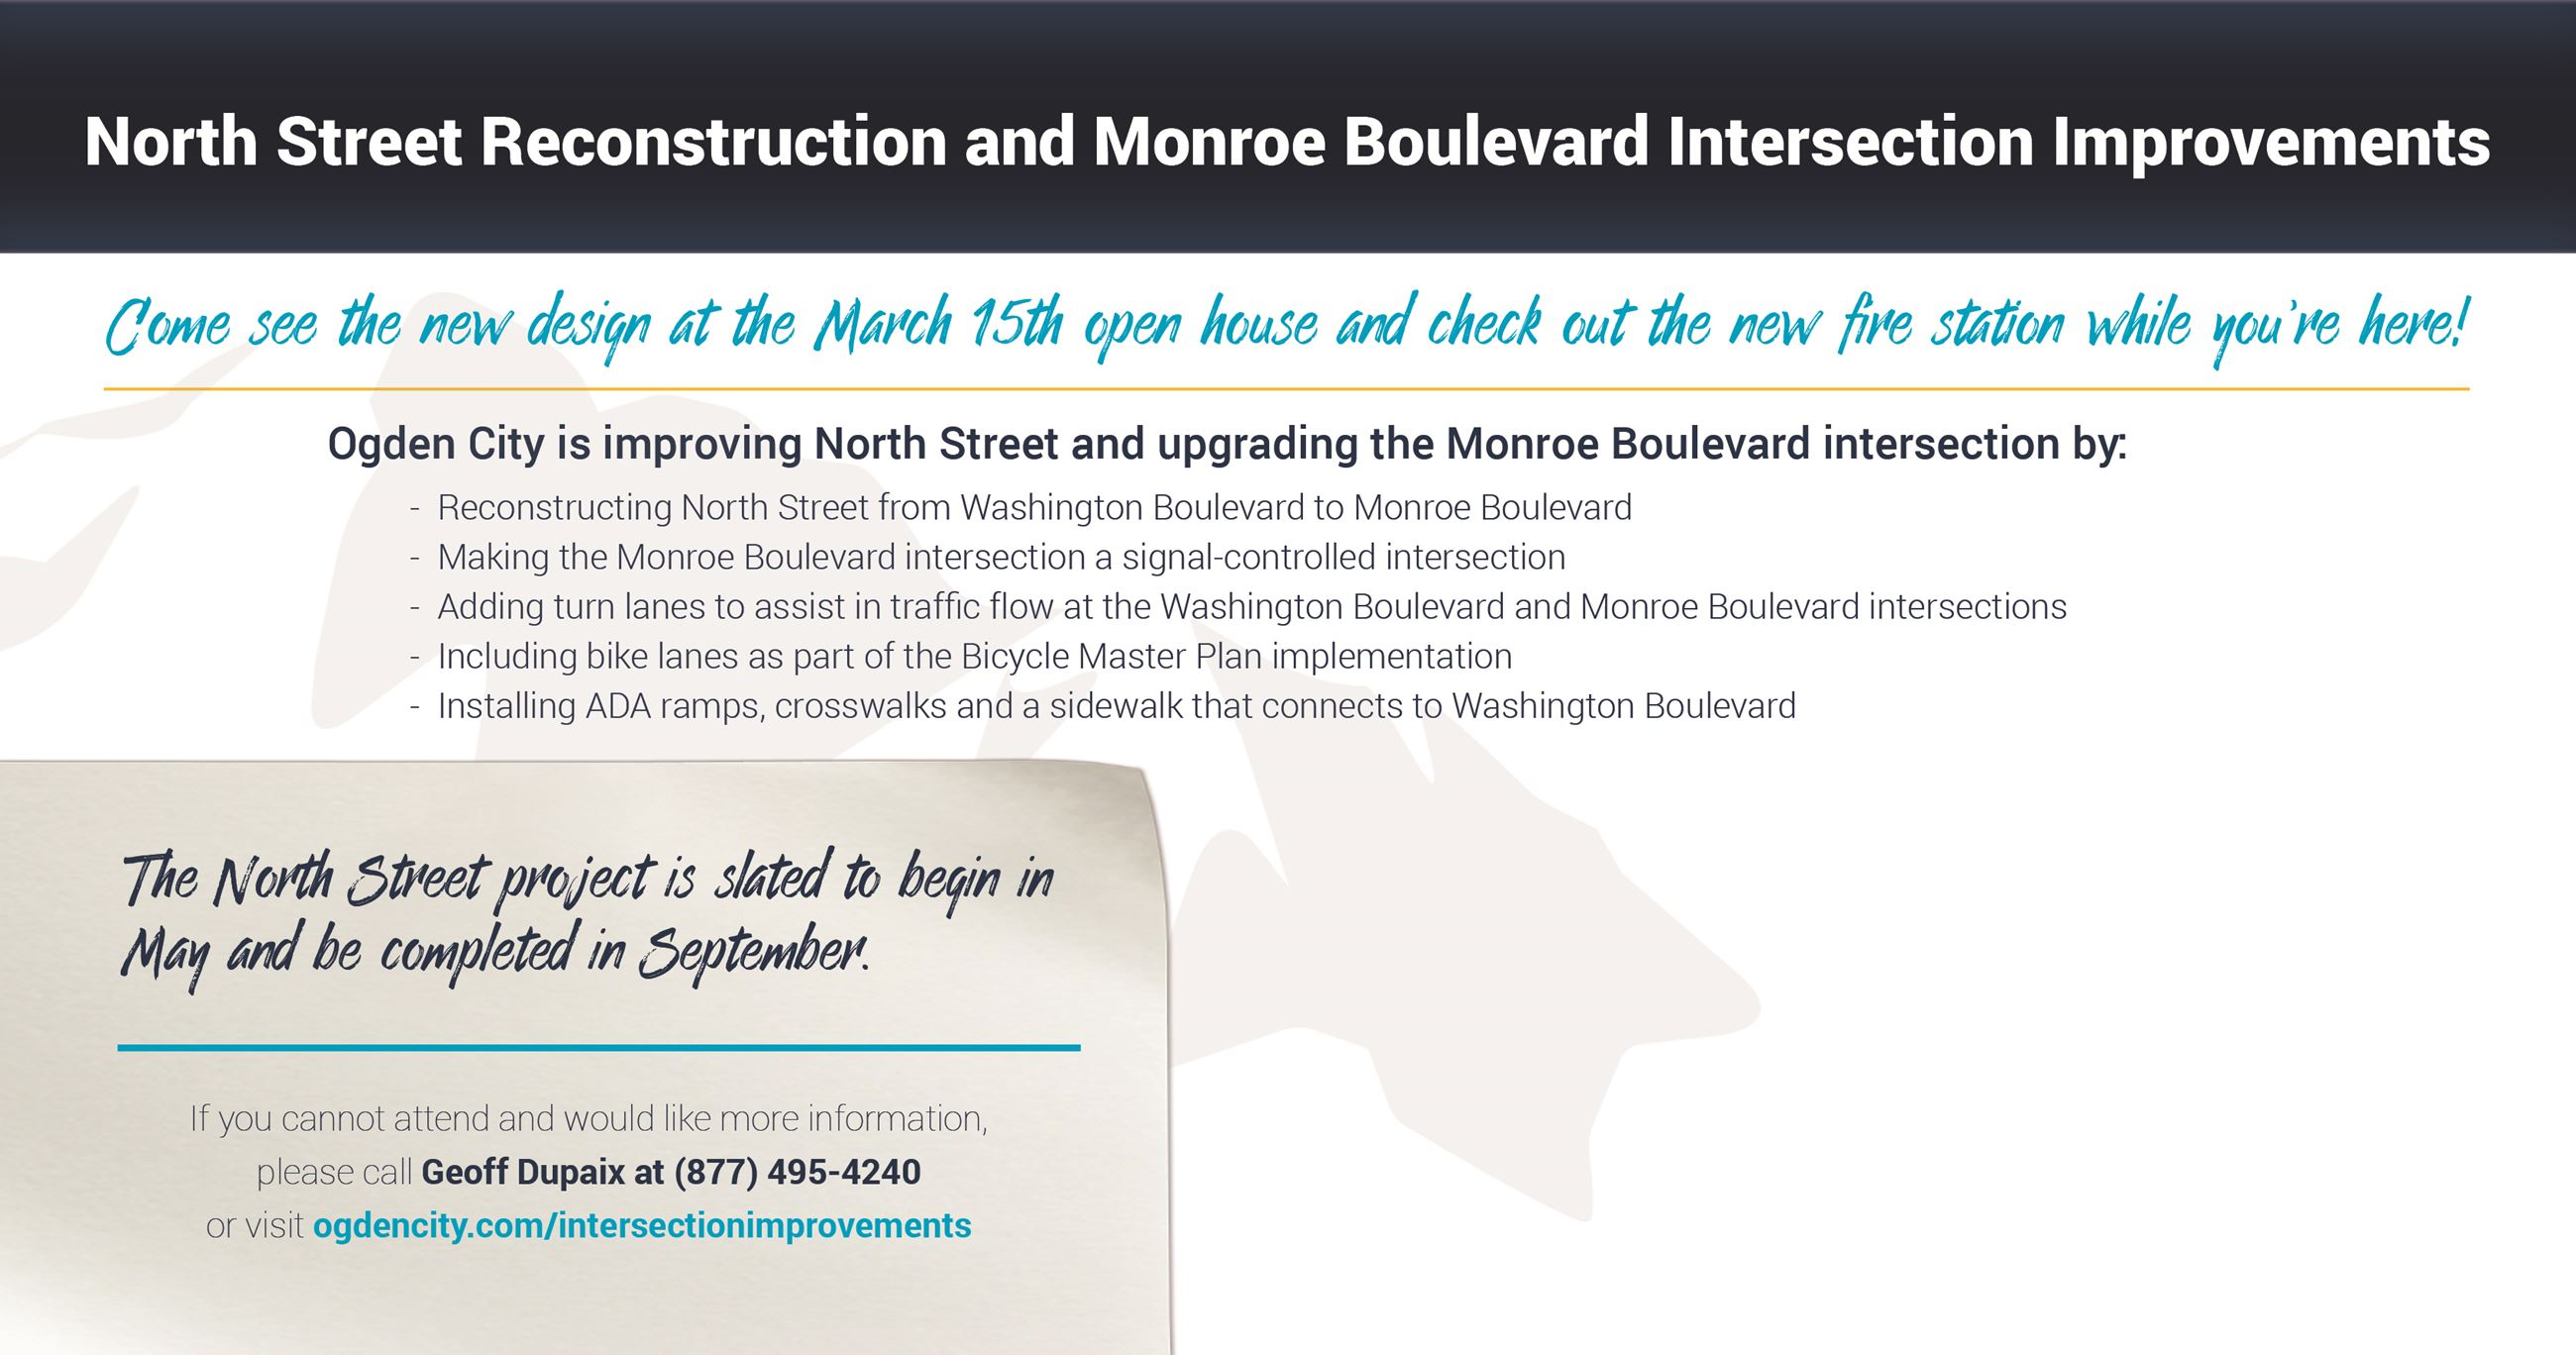 Monroe and North Street Intersection Additional Information